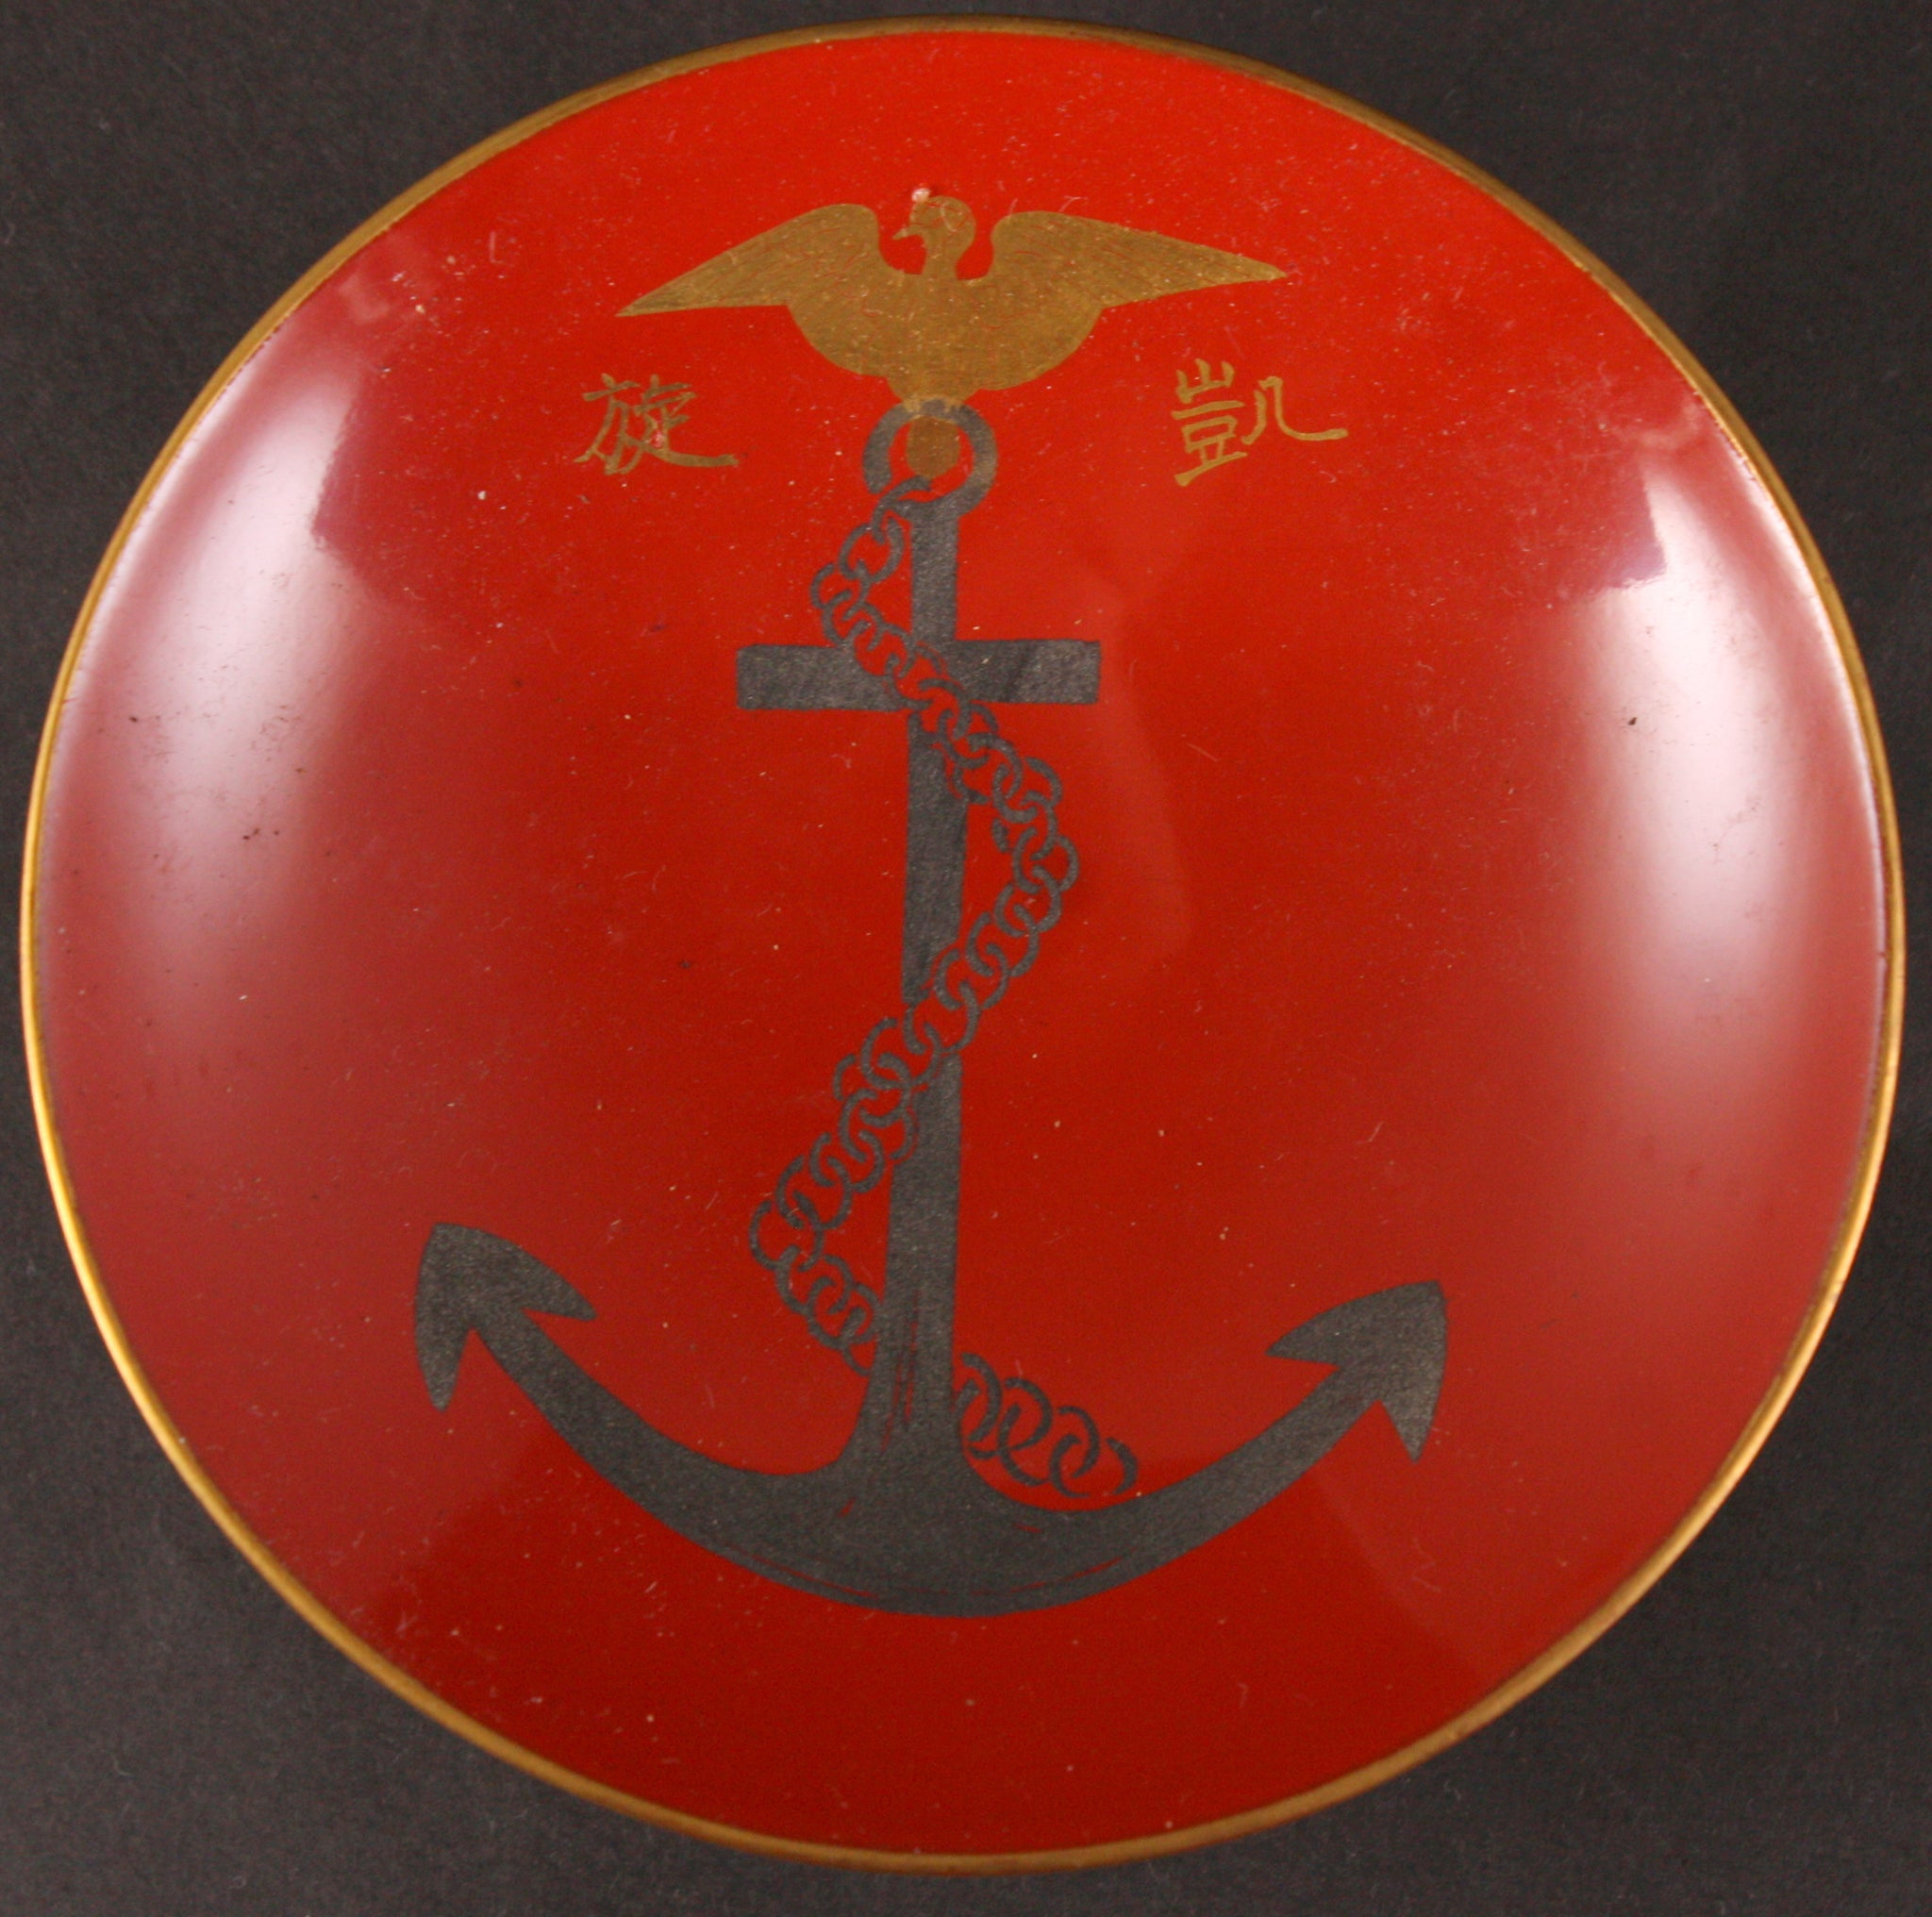 Antique Japanese Military Victory Celebration Lacquer Army Navy Sake Cup